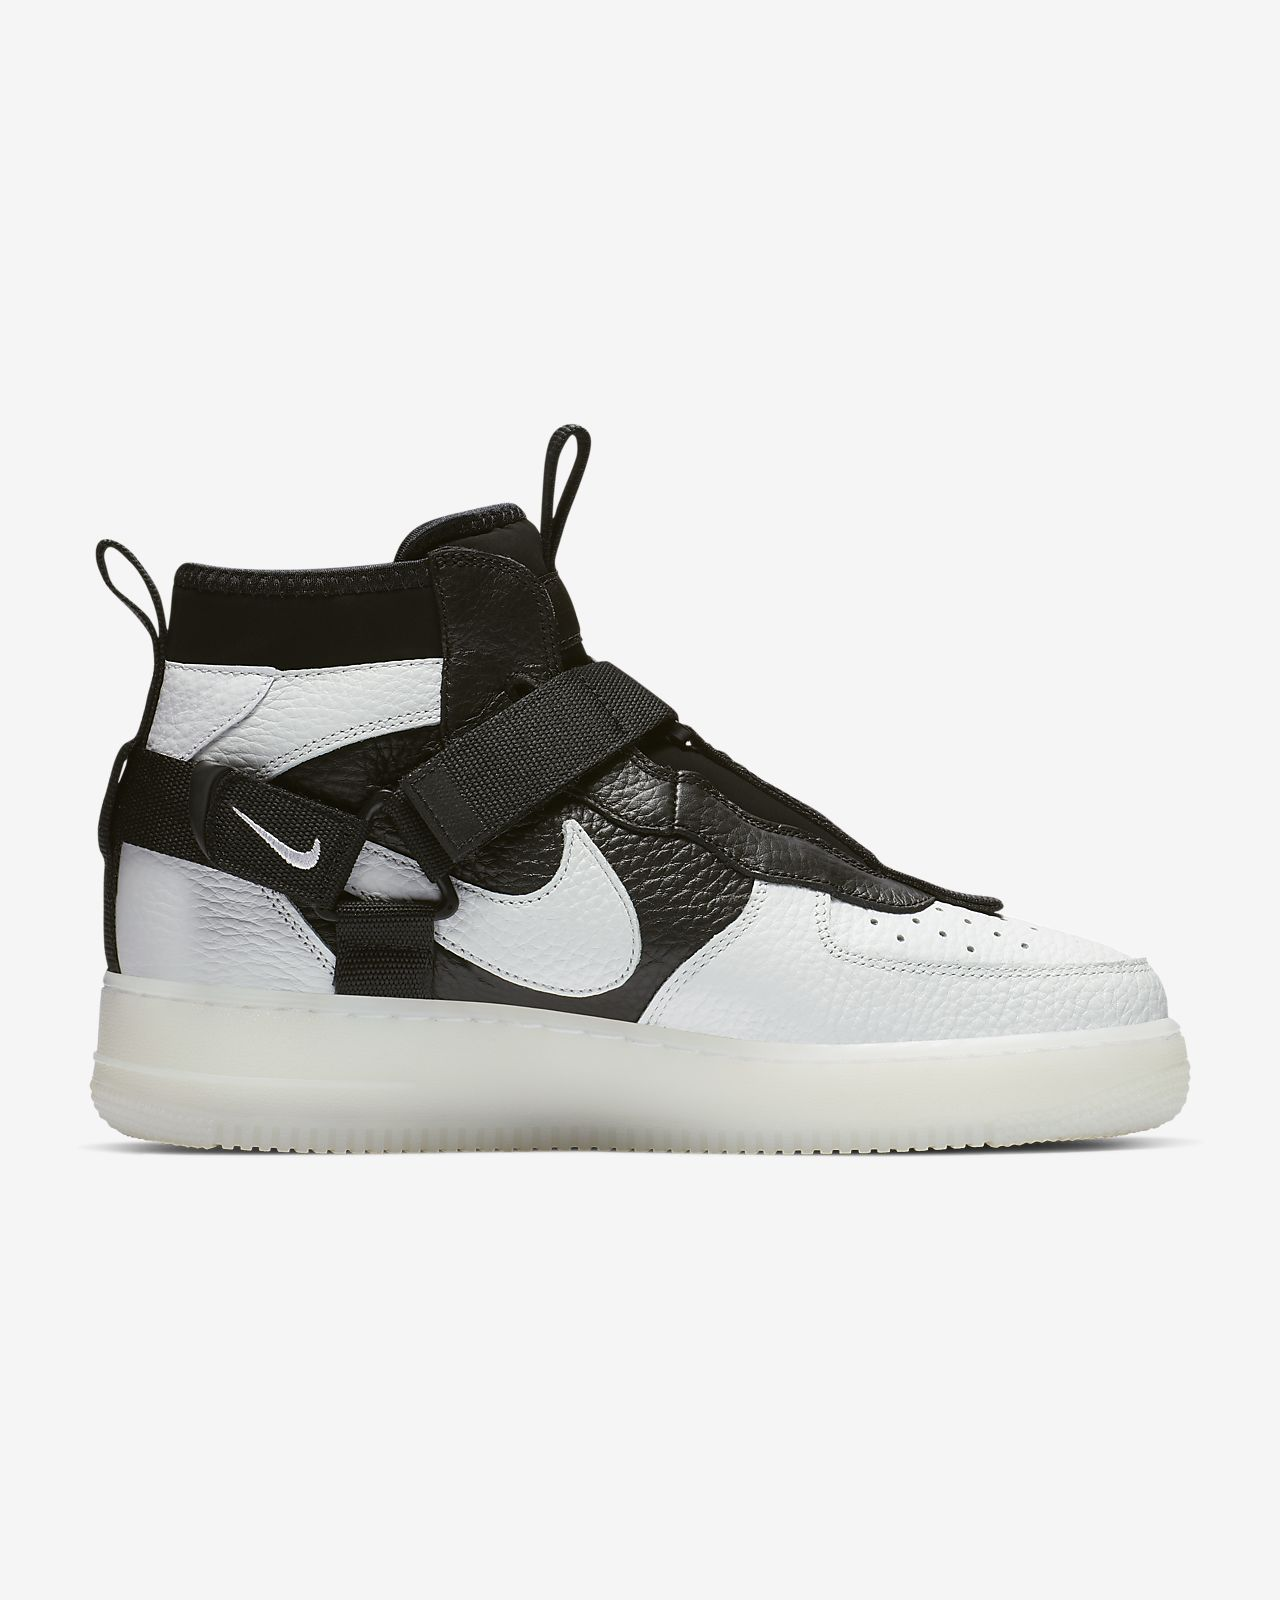 new style dff8a 59050 ... Nike Air Force 1 Utility Mid Men s Shoe